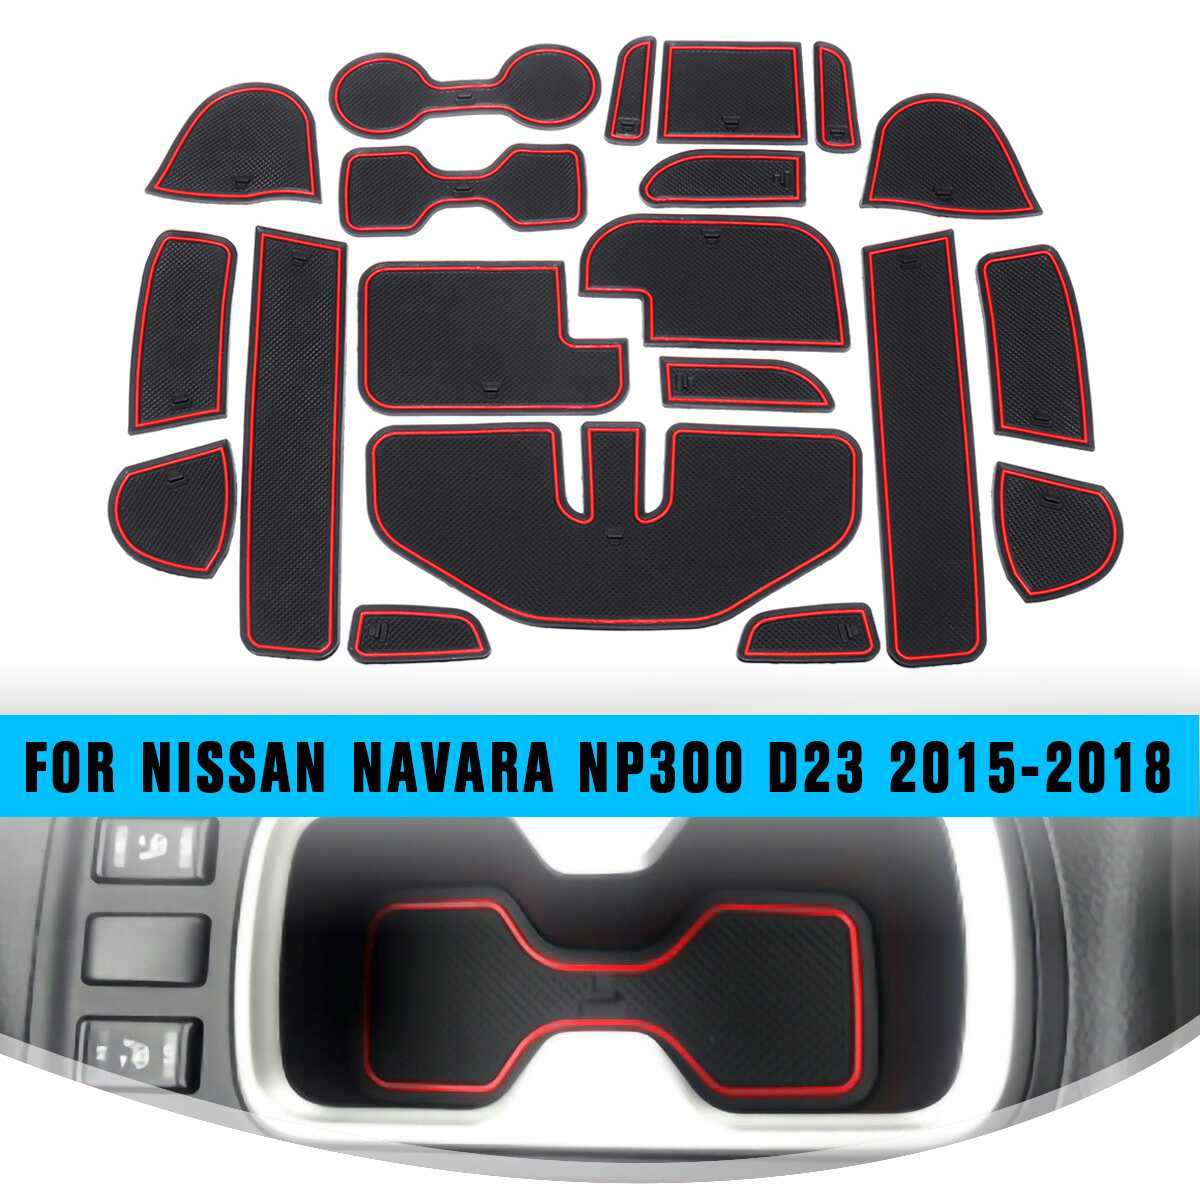 Car Accessories Auto Door Groove Mats/Cup Mats 20pcs For Nissan Navara NP300 D23 2015-2018 Car Anti Non Slips